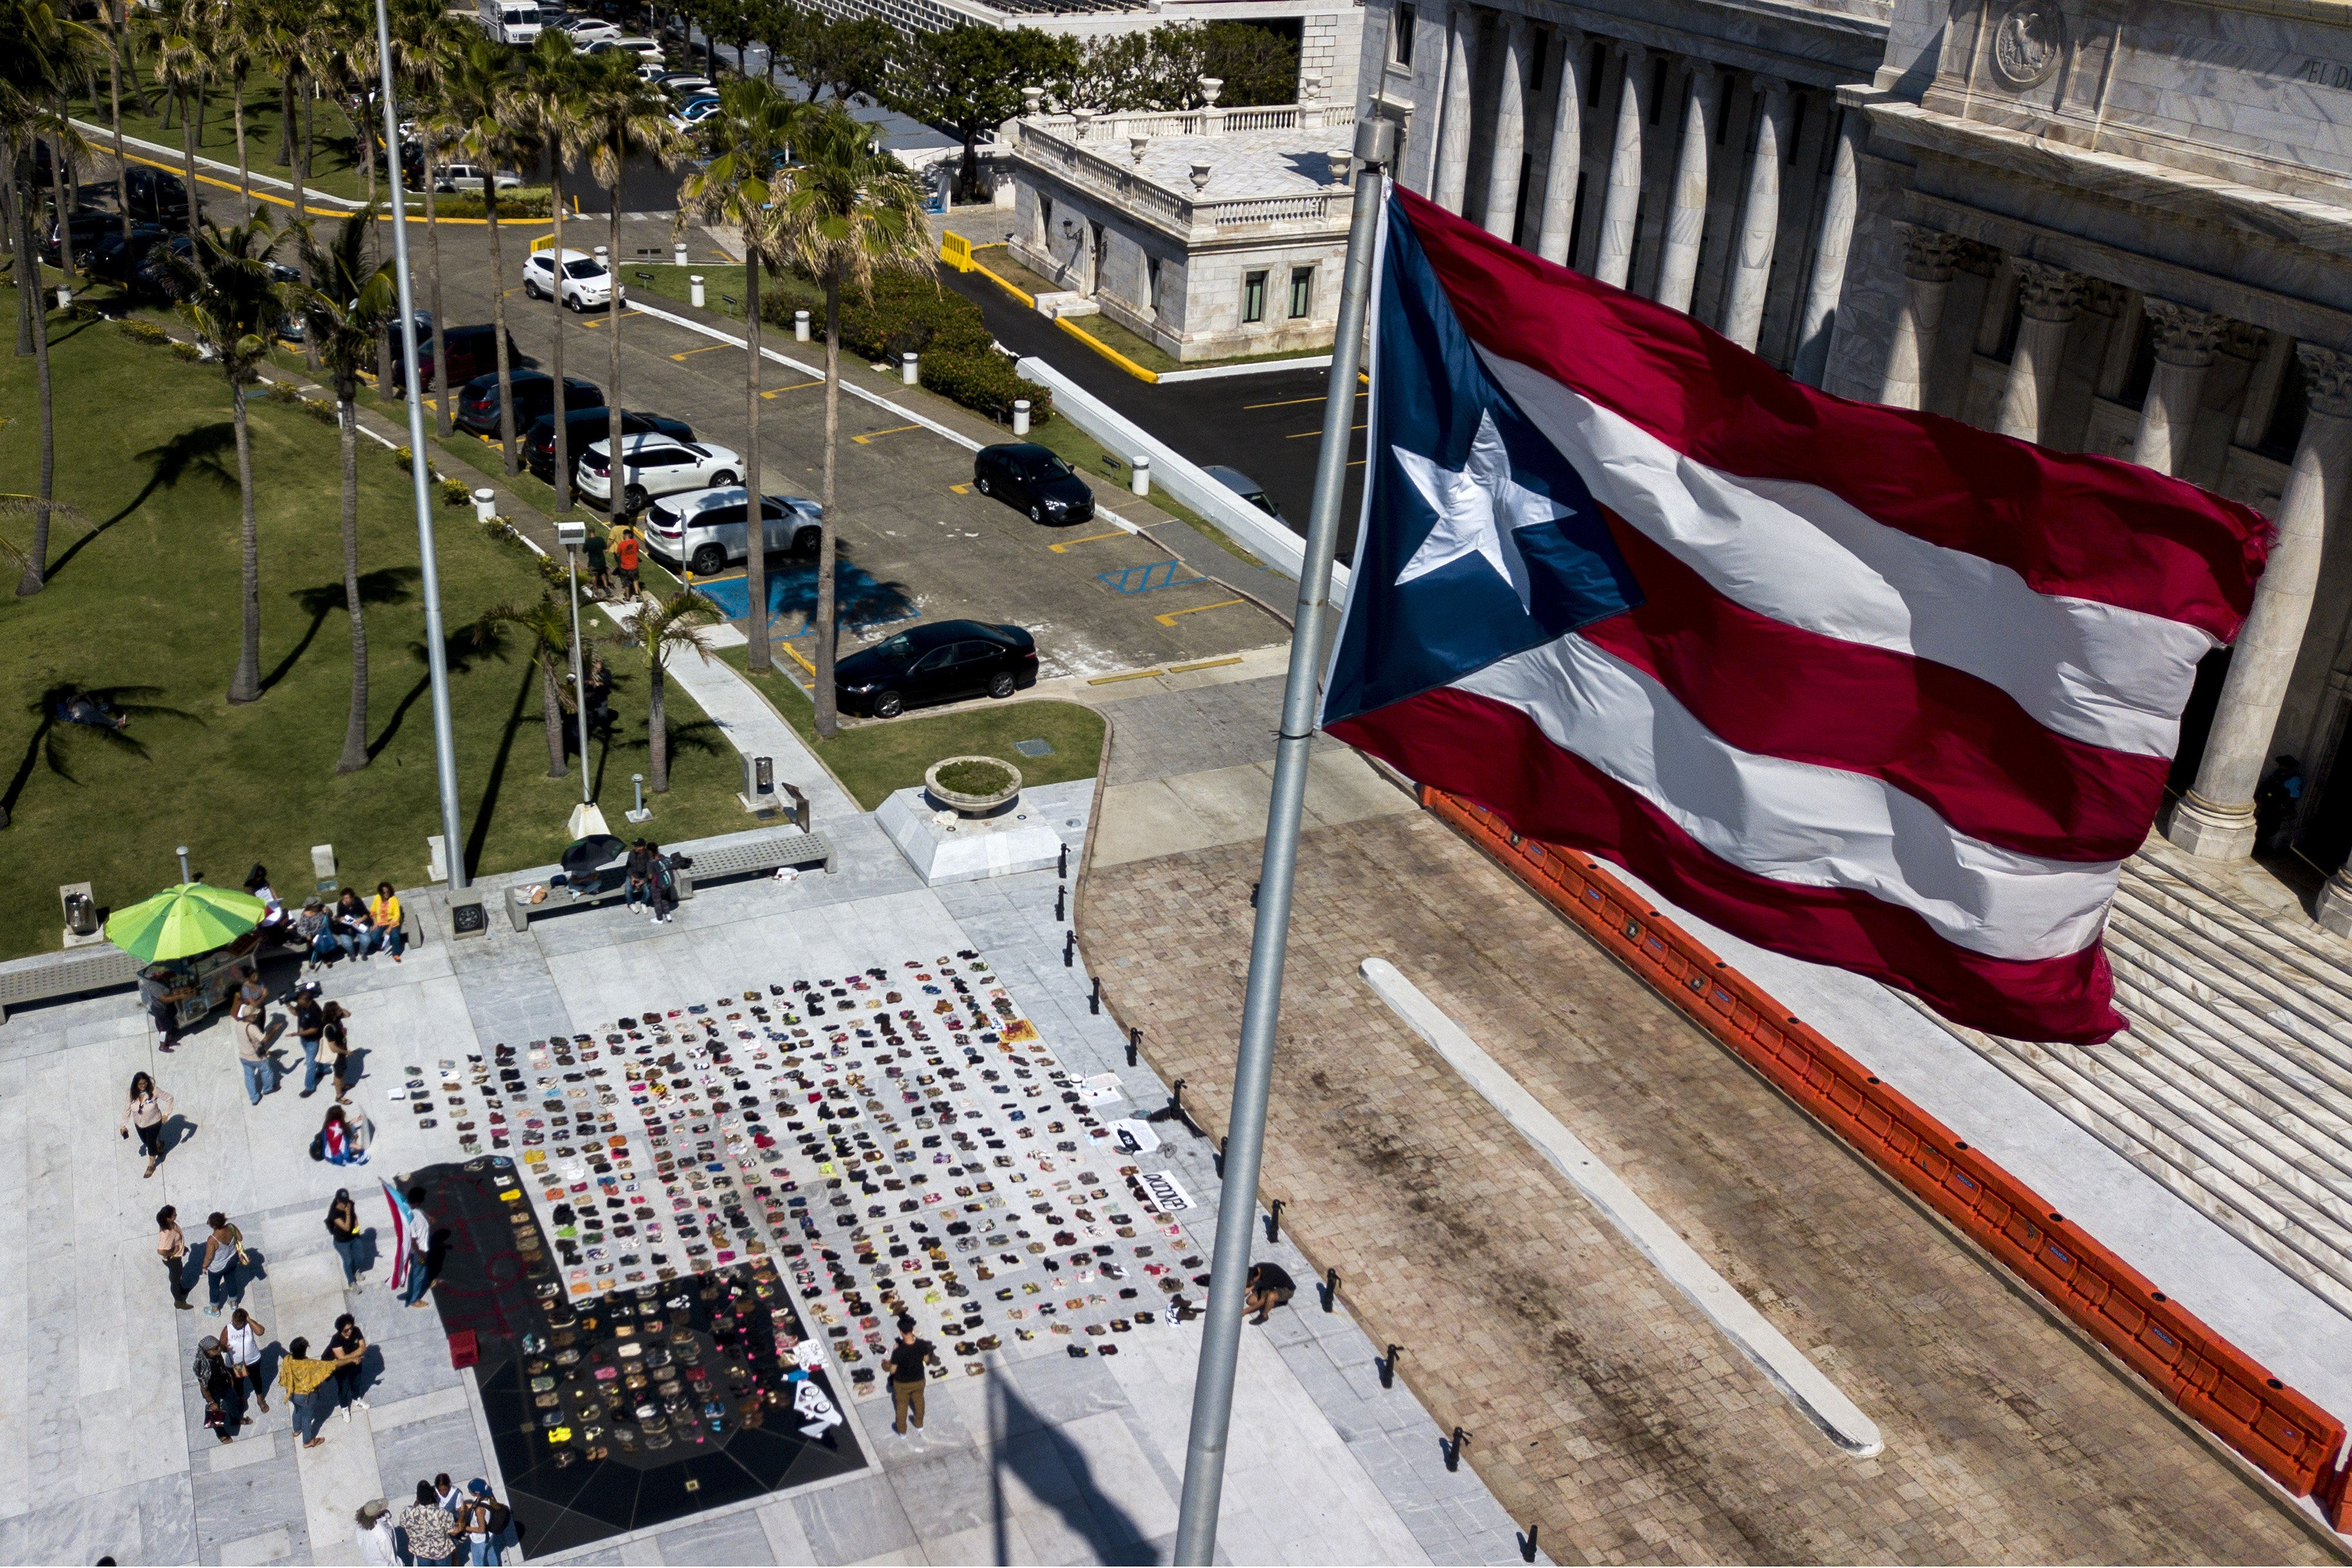 A Puerto Rican flag flies above empty pairs of shoes outside the Capitol building in this aerial photograph taken during a protest against the government's reporting of the death toll from  Hurricane Maria in San Juan, Puerto Rico, on Friday, June 1, 2018. Hurricane Maria probably killed about 5,000 people in Puerto Rico last year even though the official count remains at just 64, according to a Harvard University study released Tuesday. Photographer: Xavier Garcia/Bloomberg via Getty Images